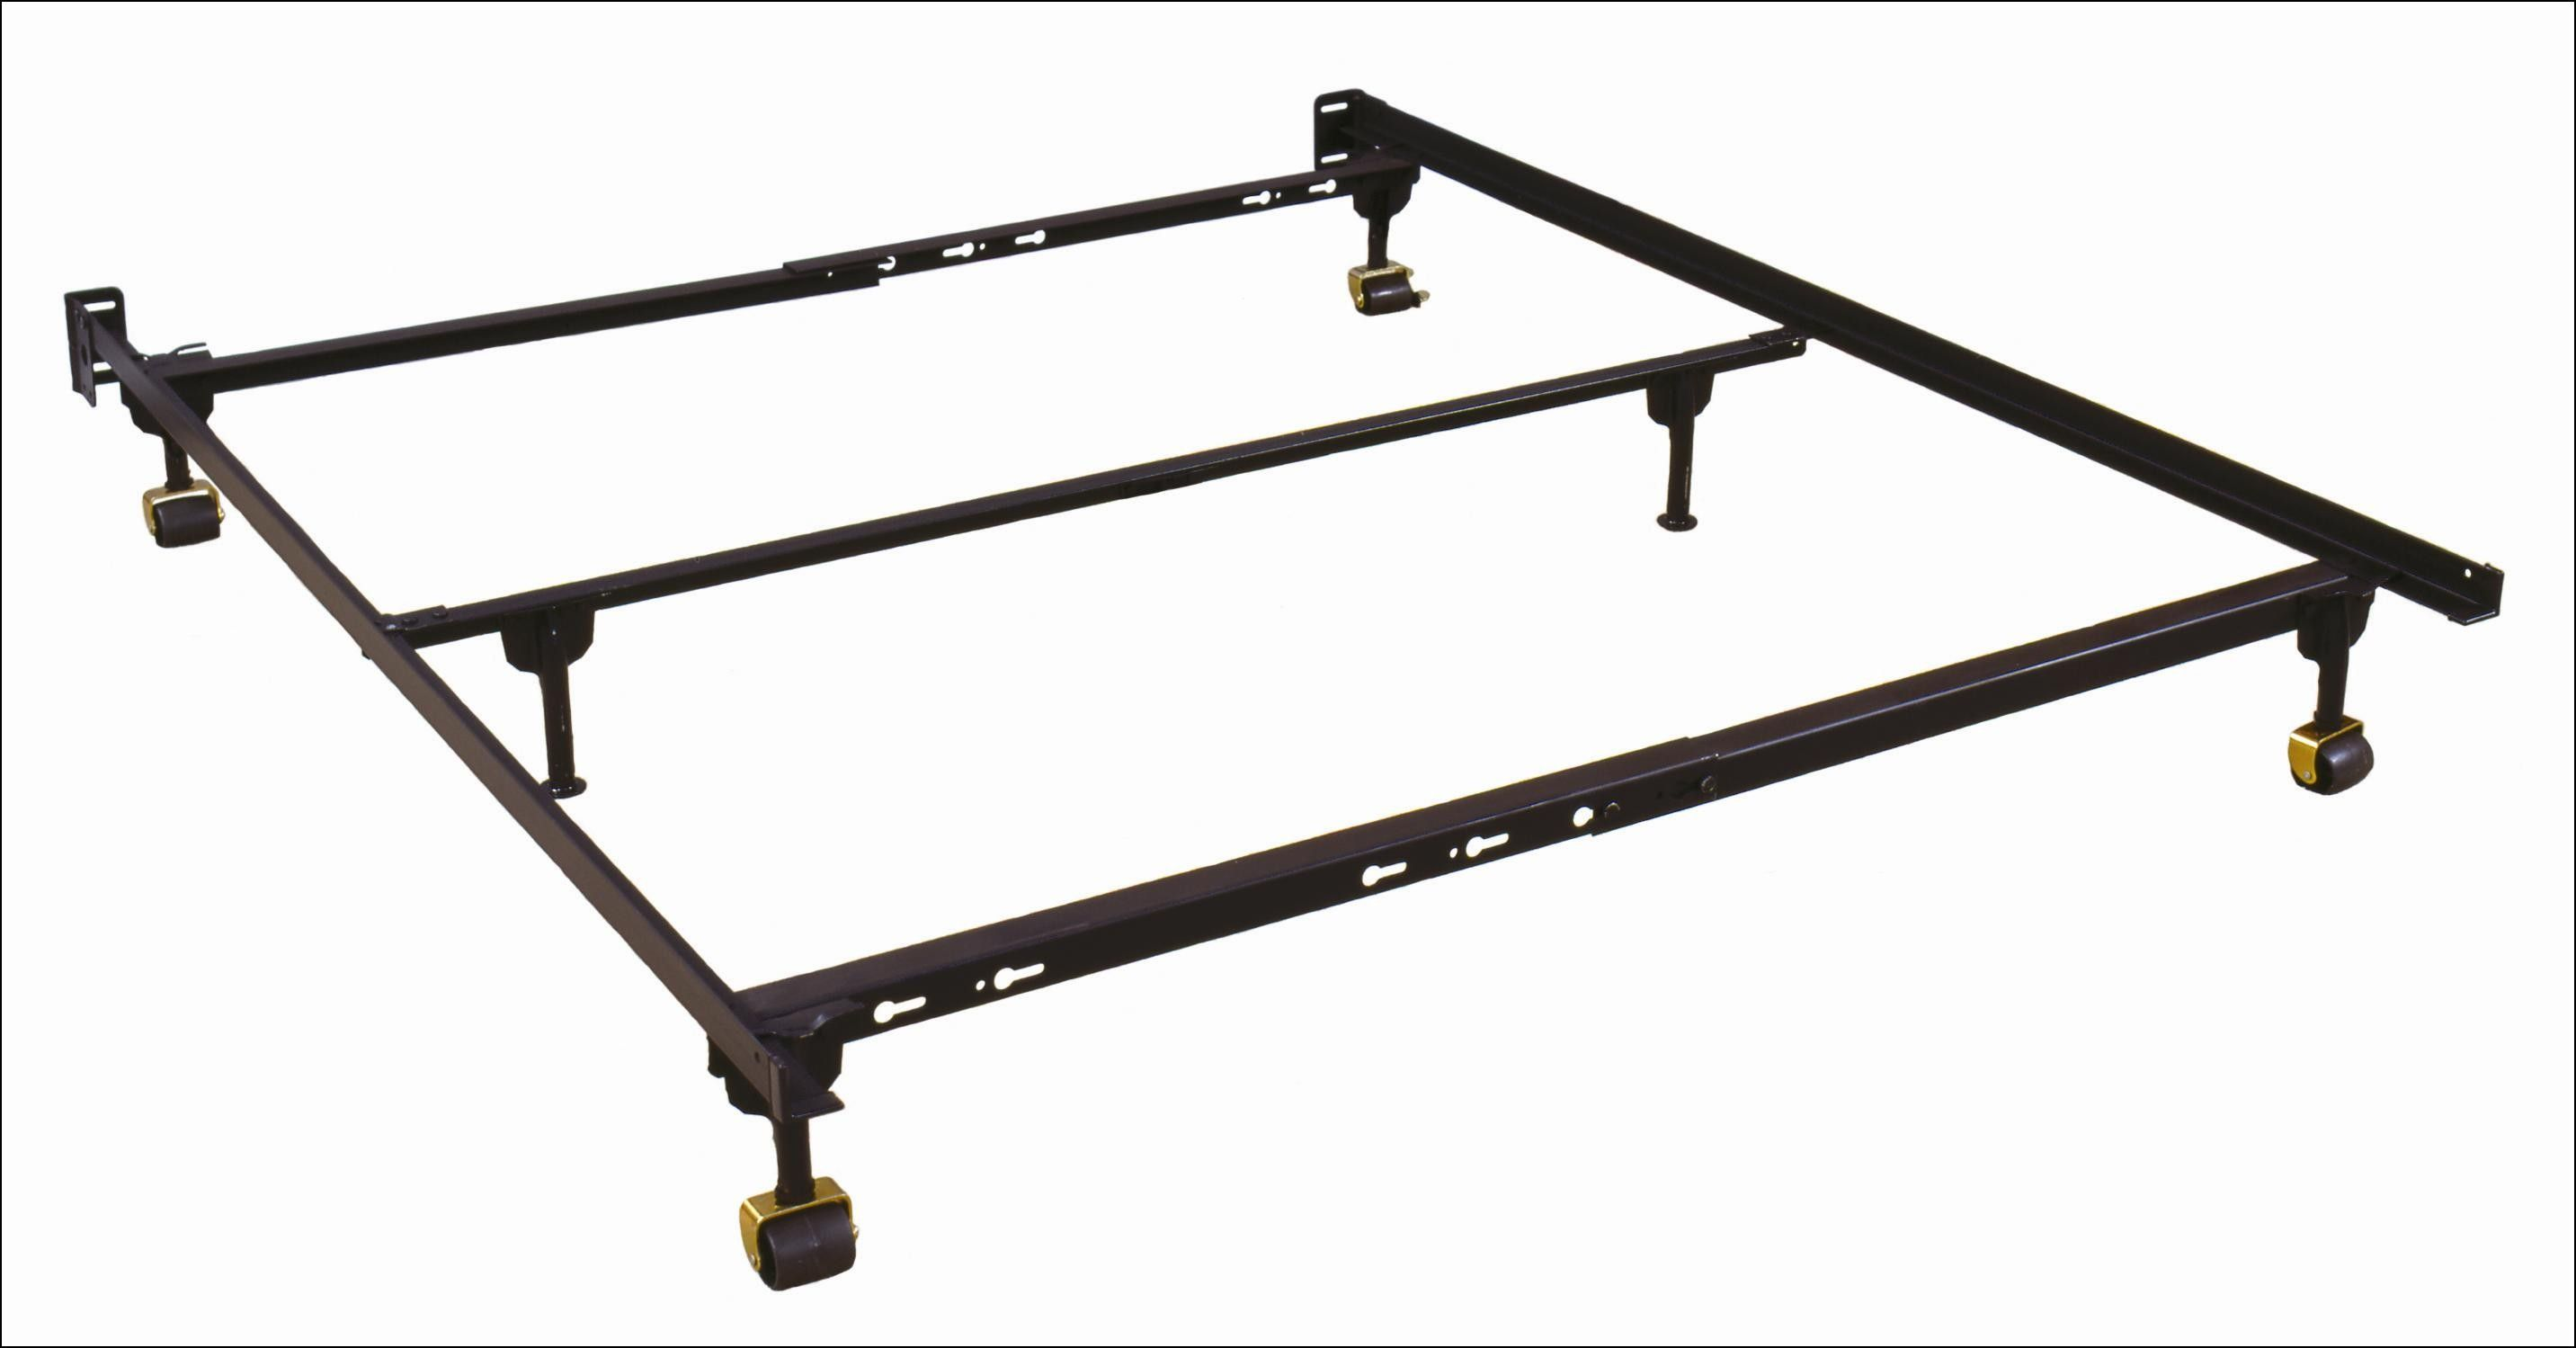 Queen Metal Bed Frame with Wheels | Wheels - Tires Gallery ...